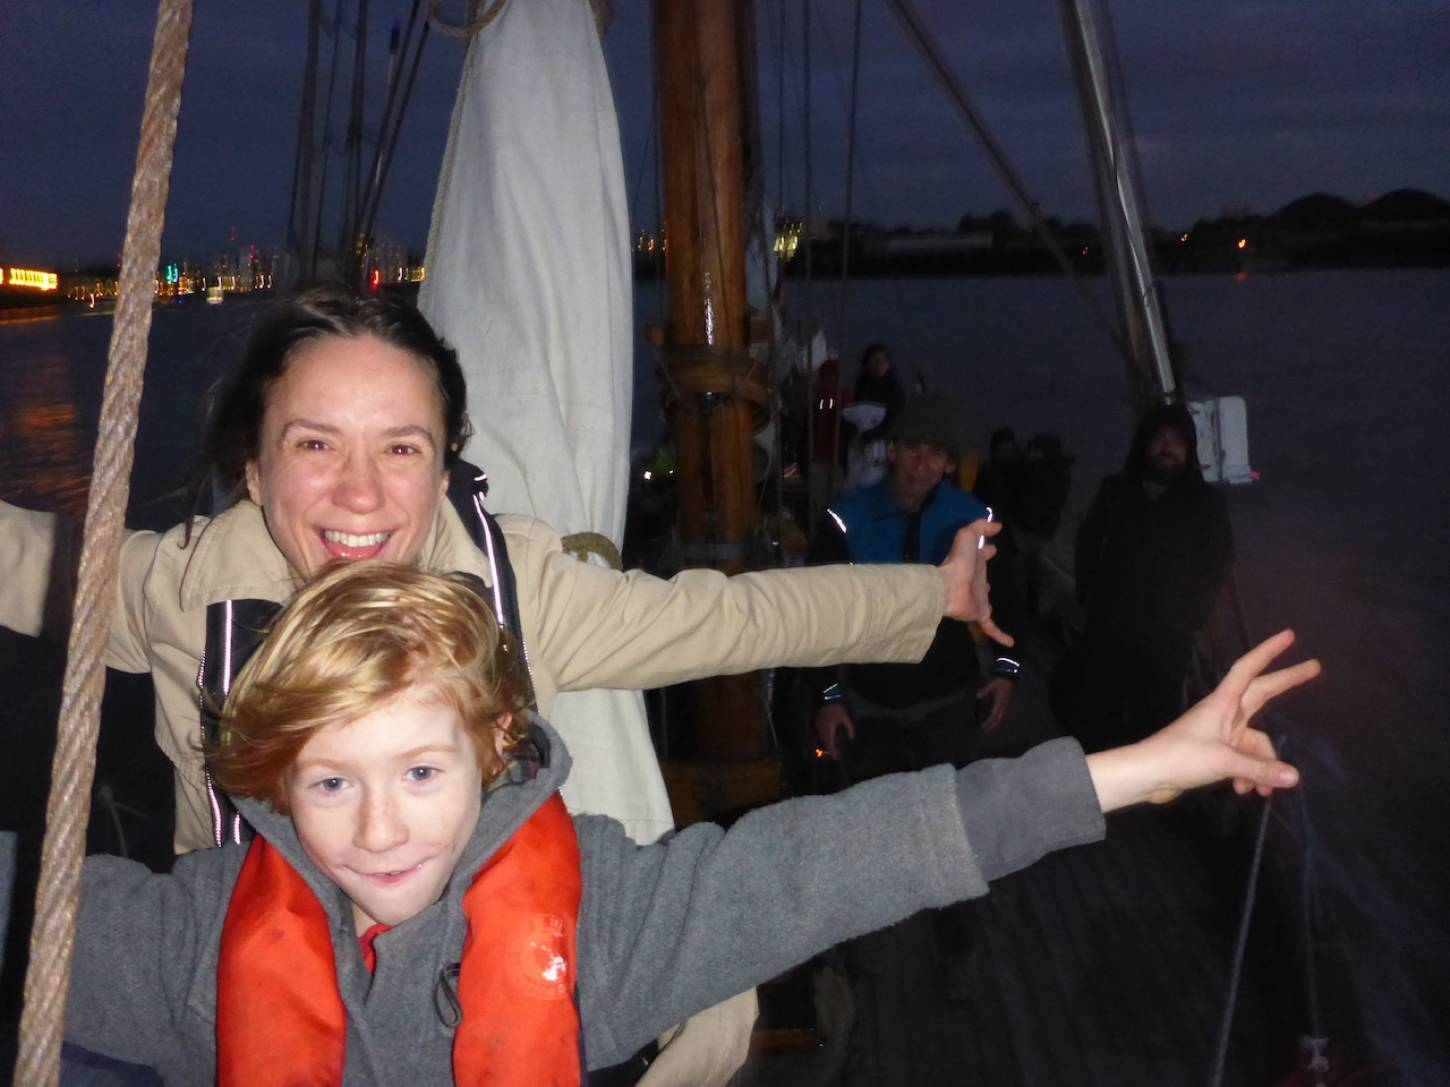 on Gravesend to Port of London leg of <a href='http://https://www.facebook.com/theseedjourney/' target='_blank'>Seed Journey</a> adventure aboard the <a href='http://www.classicboat.co.uk/articles/christiana-from-shipwreck-to-sailing/' target='_blank'>RS10 Christiana</a> 1895 Norwegian Colin Archer rescue boat - we are sailing - 8:32pm&nbsp;29<sup>th</sup>&nbsp;Sep.&nbsp;'16